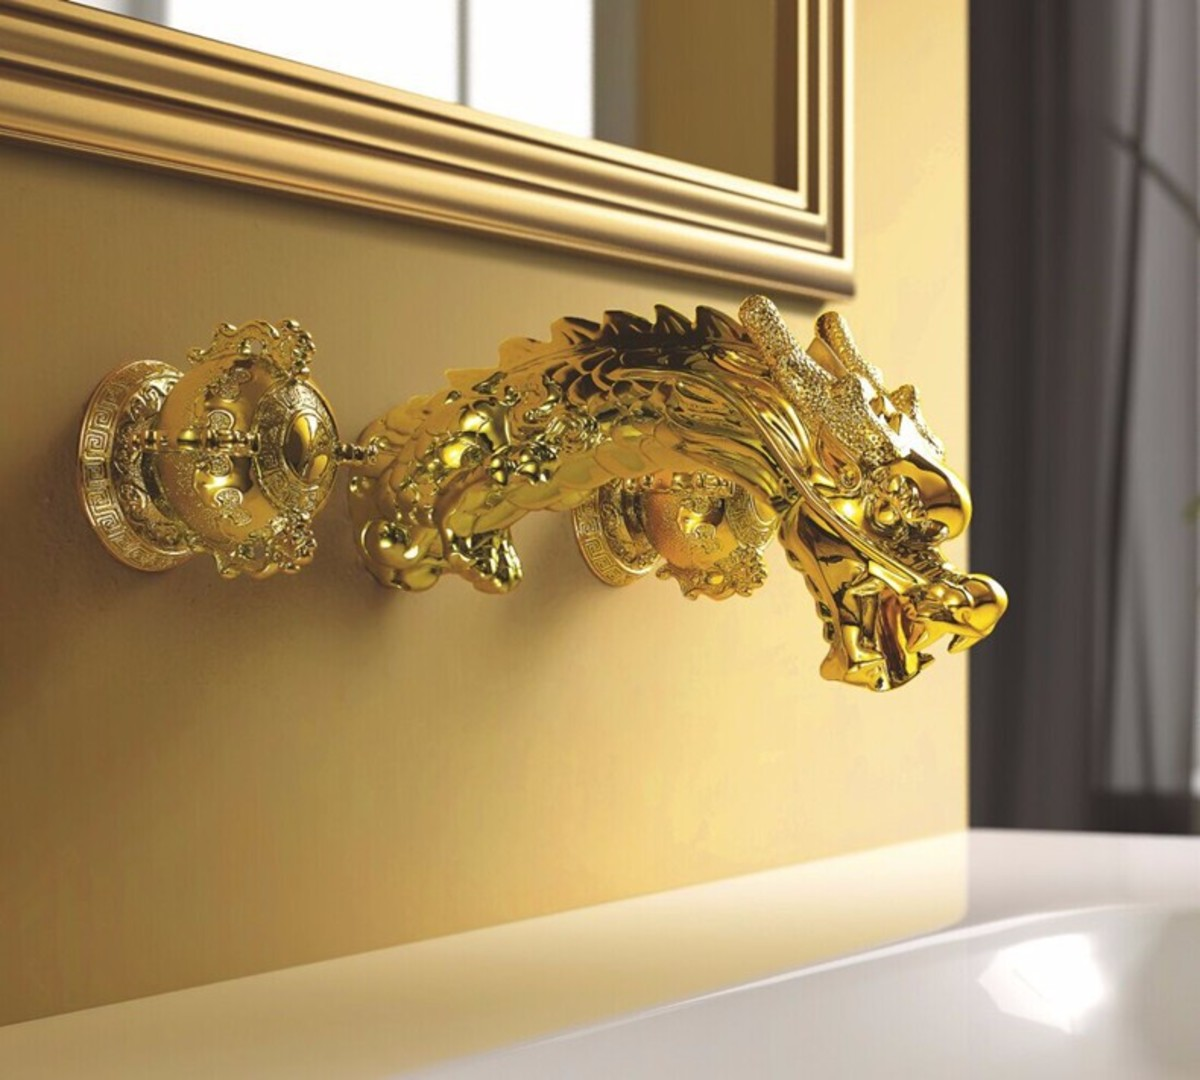 If you look hard enough, you can find metal Dragon fixtures for your bathroom. A Dragon sink faucet would look attractive and impressive. Gold and silver are both favored colors for this Zodiac